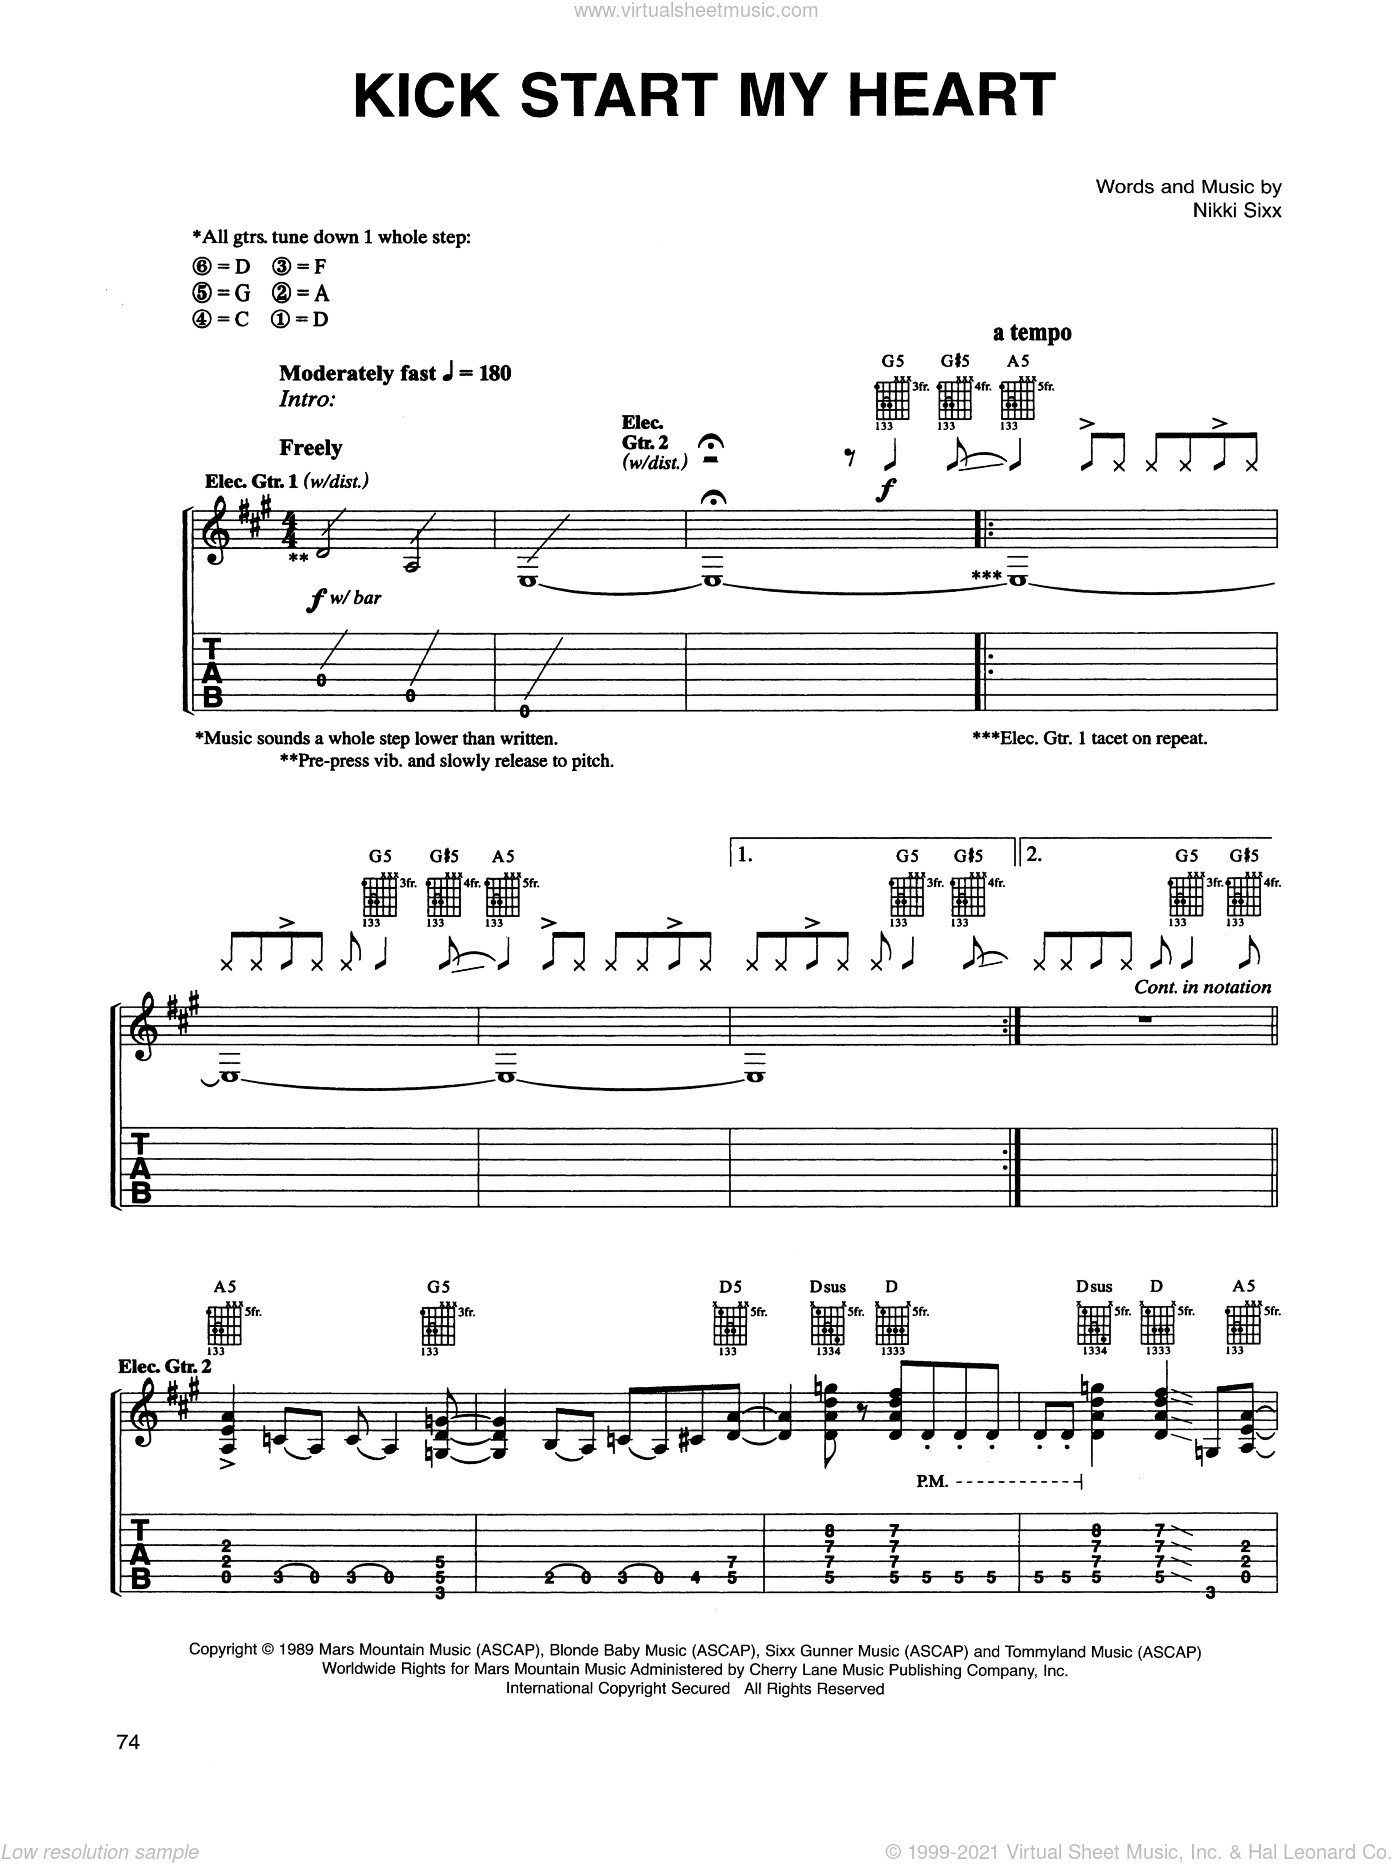 Kick Start My Heart sheet music for guitar (tablature) by Nikki Sixx